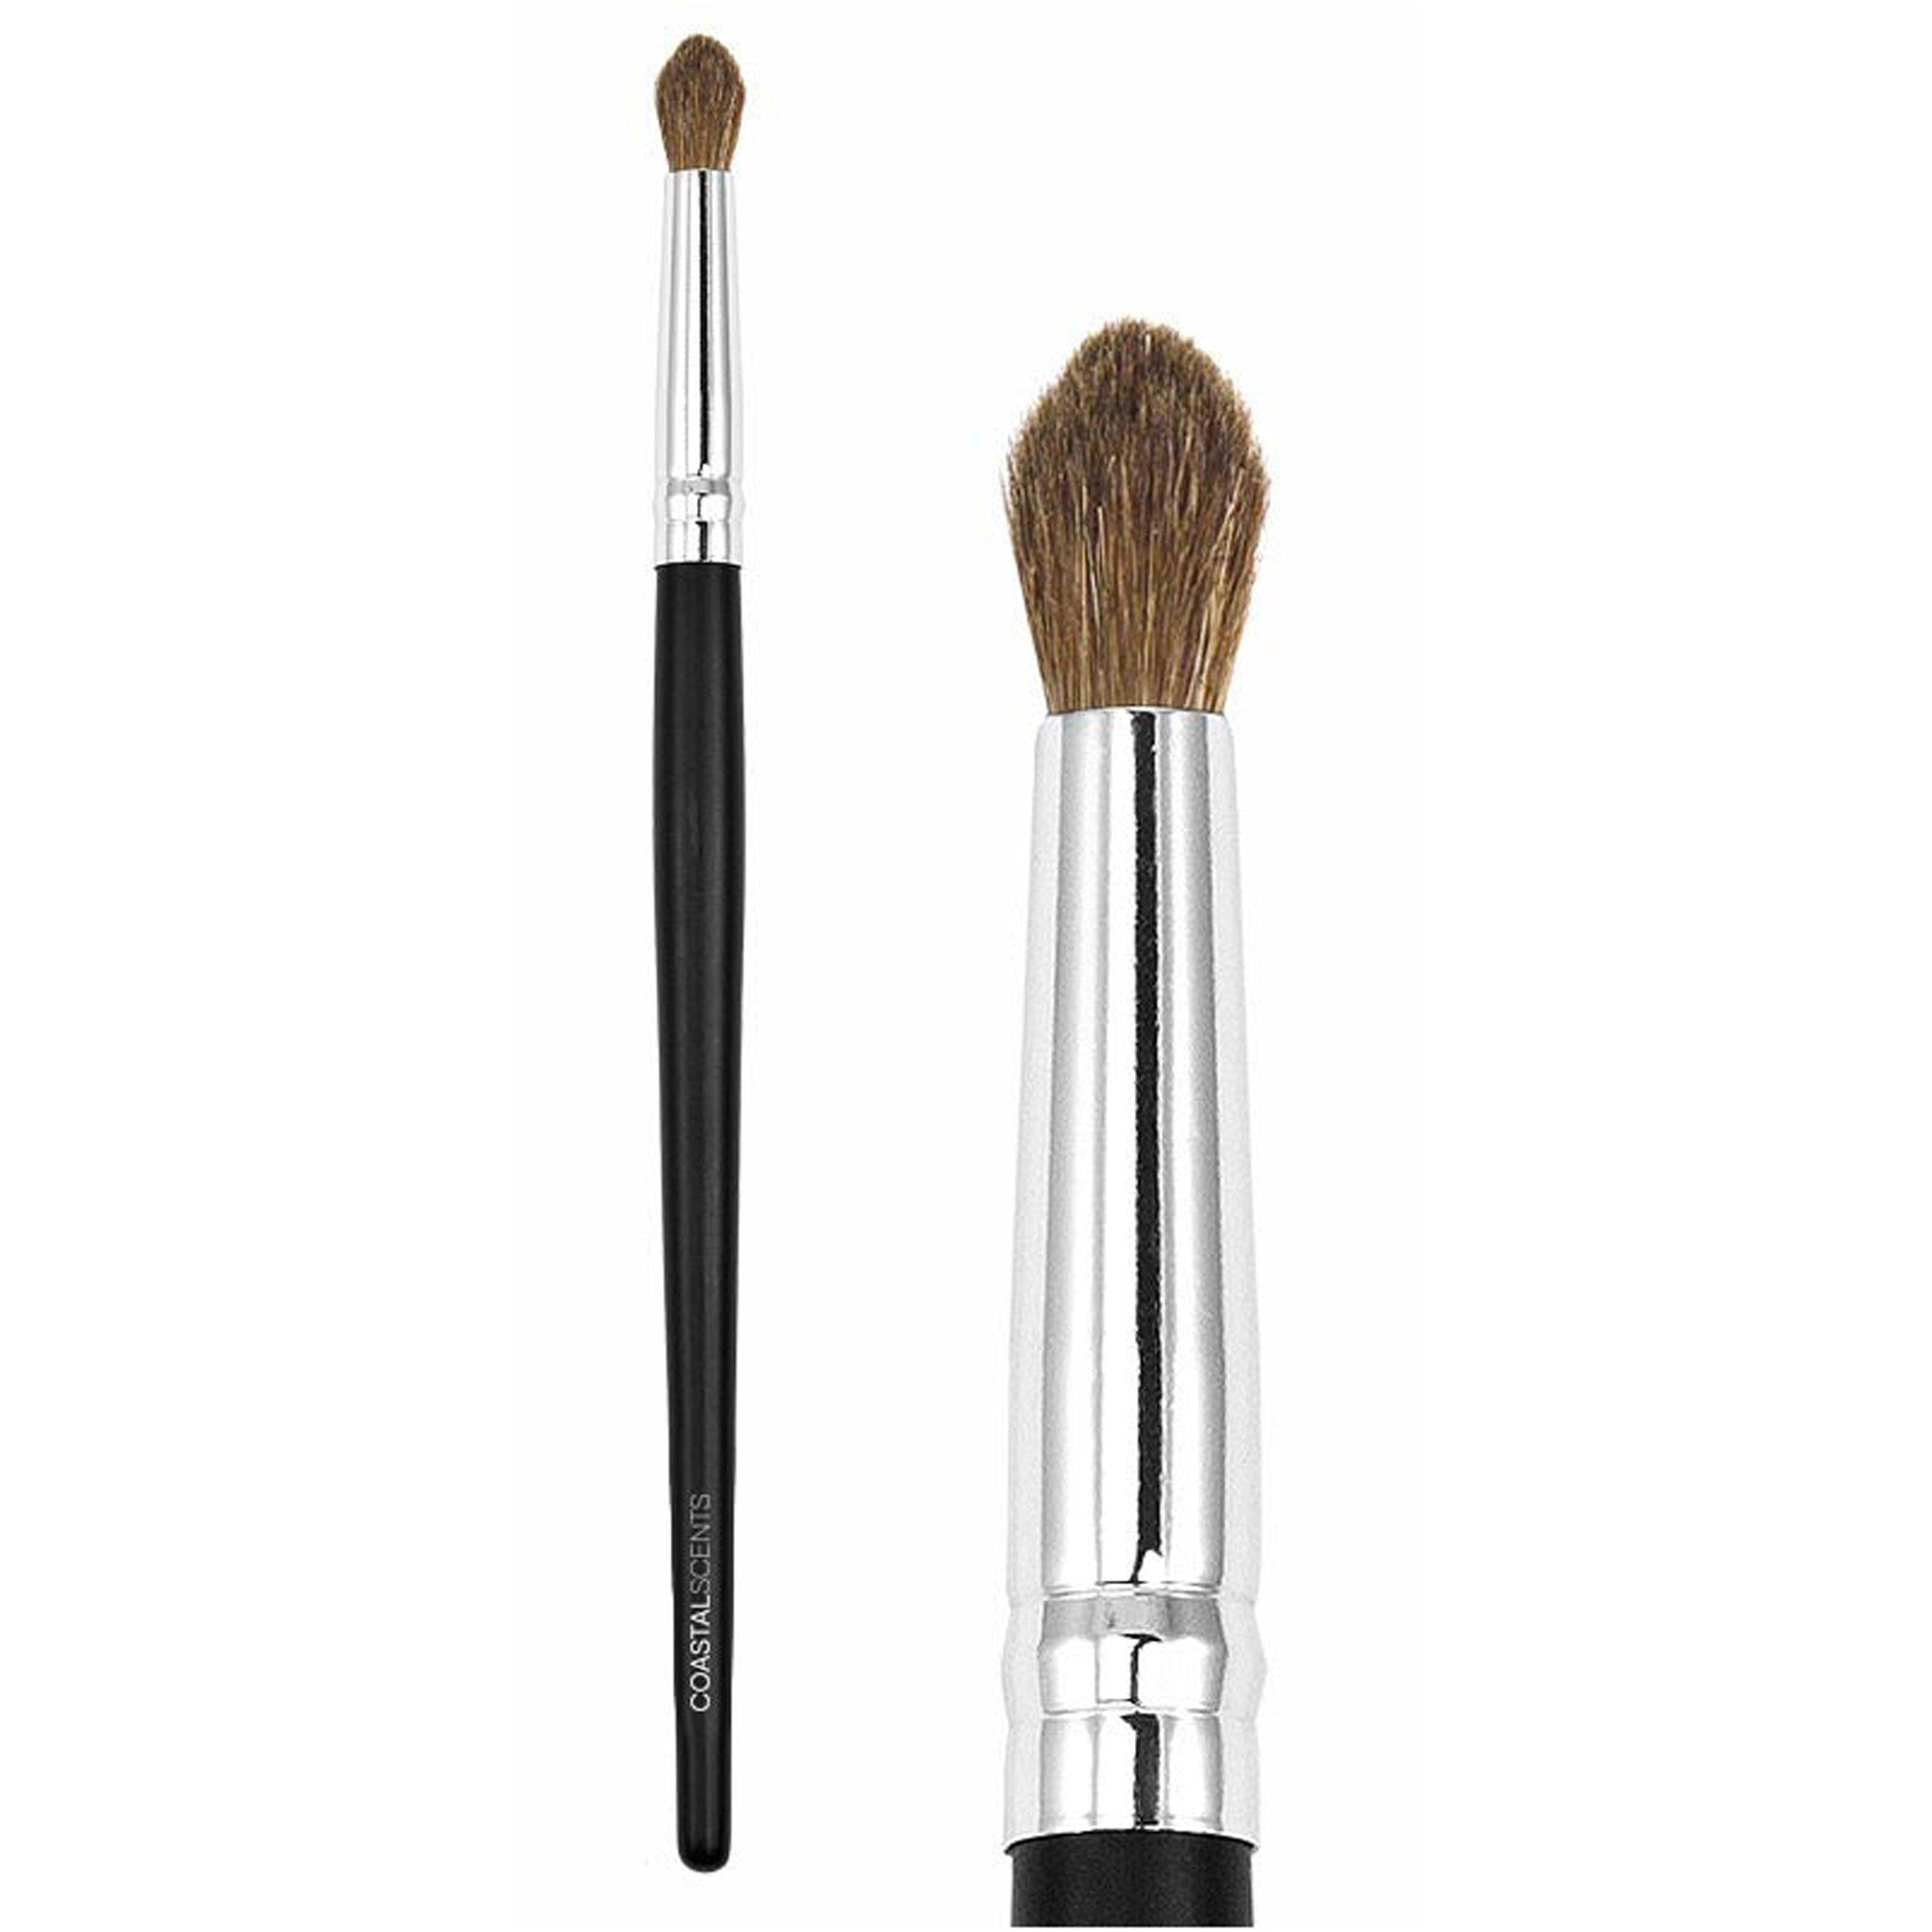 Makeup Brushes Classic Blender Crease Brush Natural By Coastal Scents